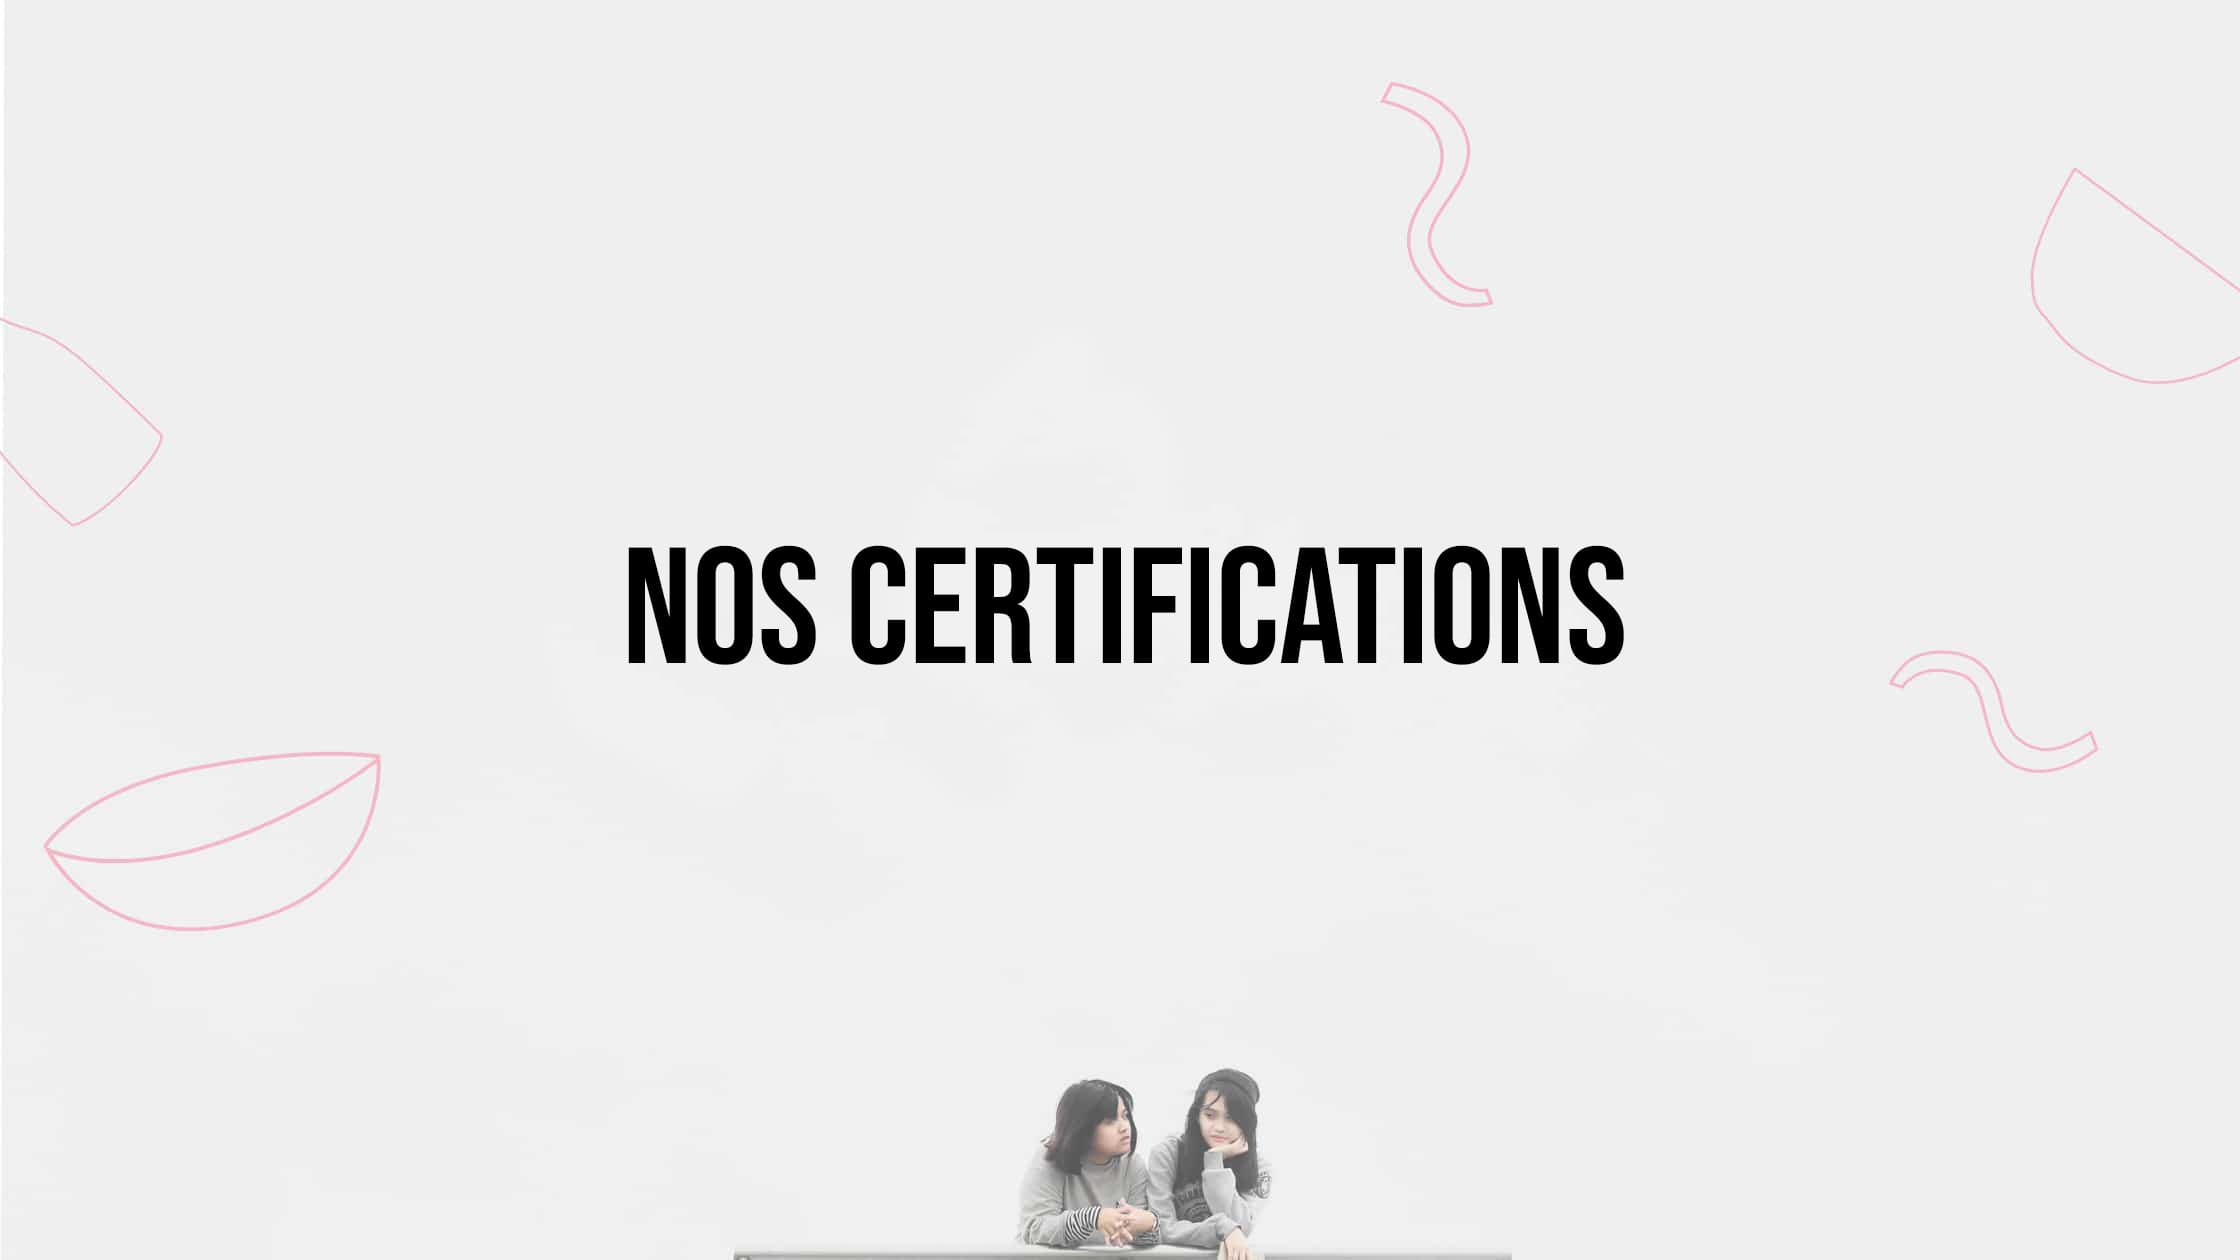 nos-certifications-mypads